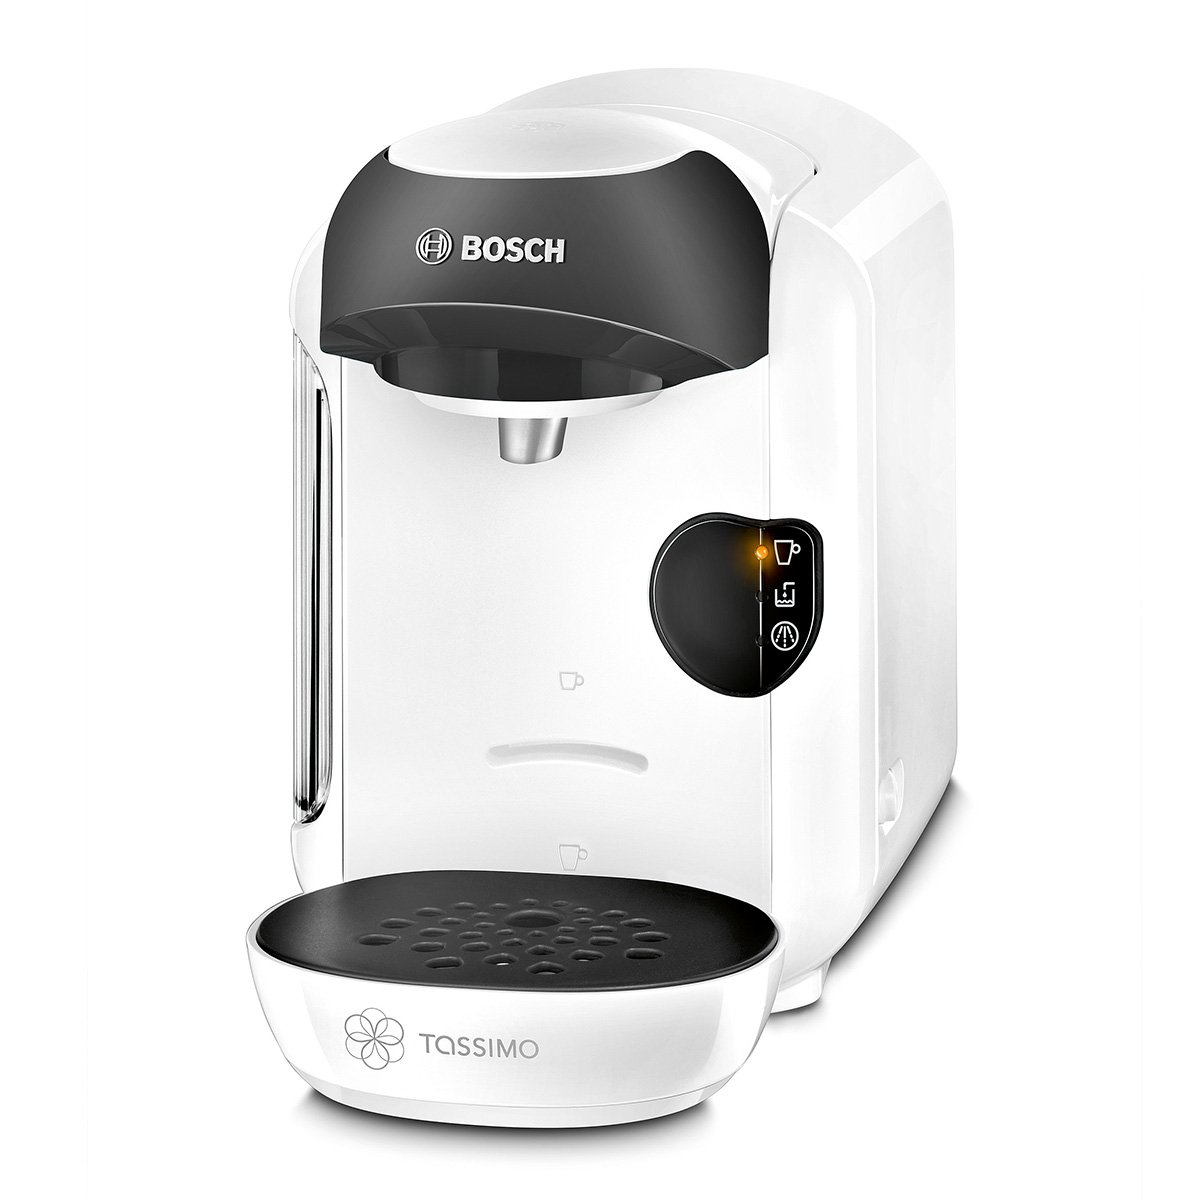 Bosch Coffee Maker Hot Water : Bosch Tassimo TAS1254GB Vivy Multi Beverage Hot Drinks Coffee Machine 1300 White eBay